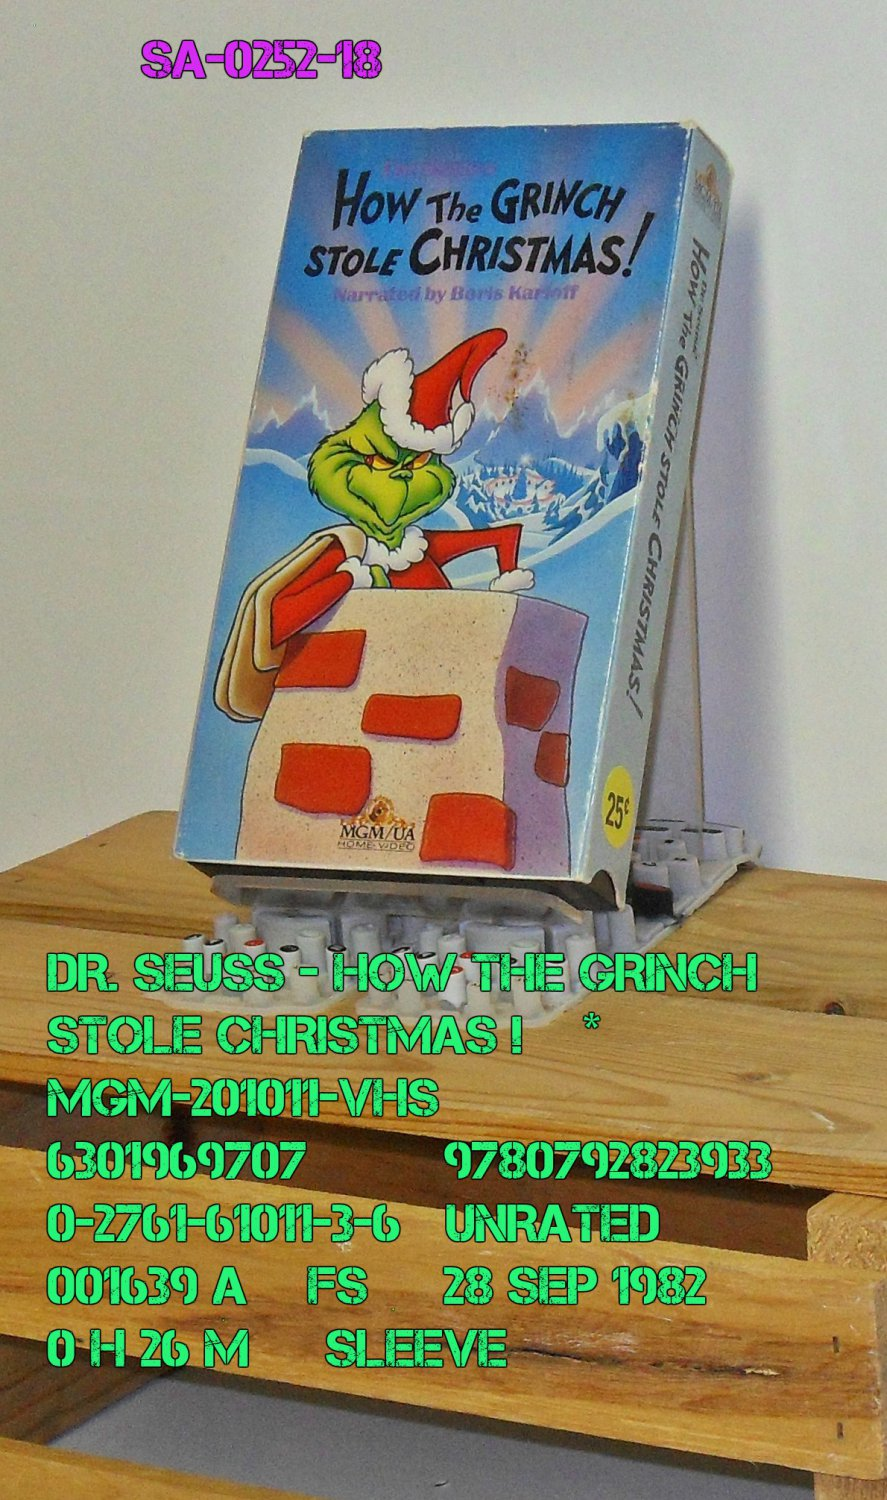 VHS - DR. SEUSS - HOW THE GRINCH STOLE CHRISTMAS  *